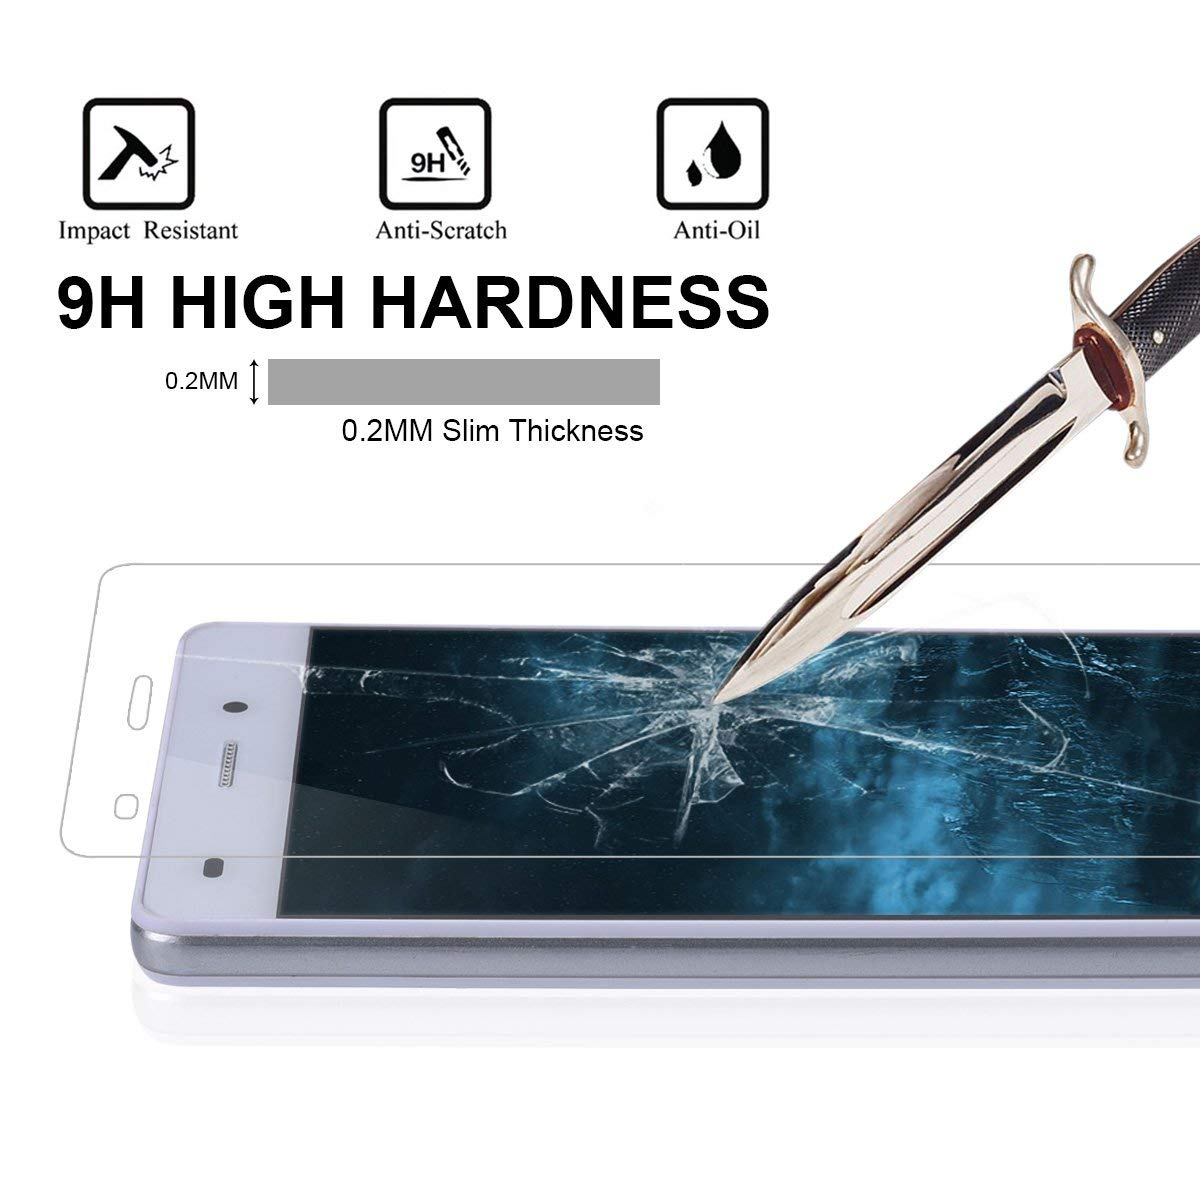 Image 3 - Premium Tempered Glass For Huawei P8 Lite 2016 Screen Protector Huawei P8 Lite Protective Film ALE L04 L02 L21 CL00 TL00 Glass-in Phone Screen Protectors from Cellphones & Telecommunications